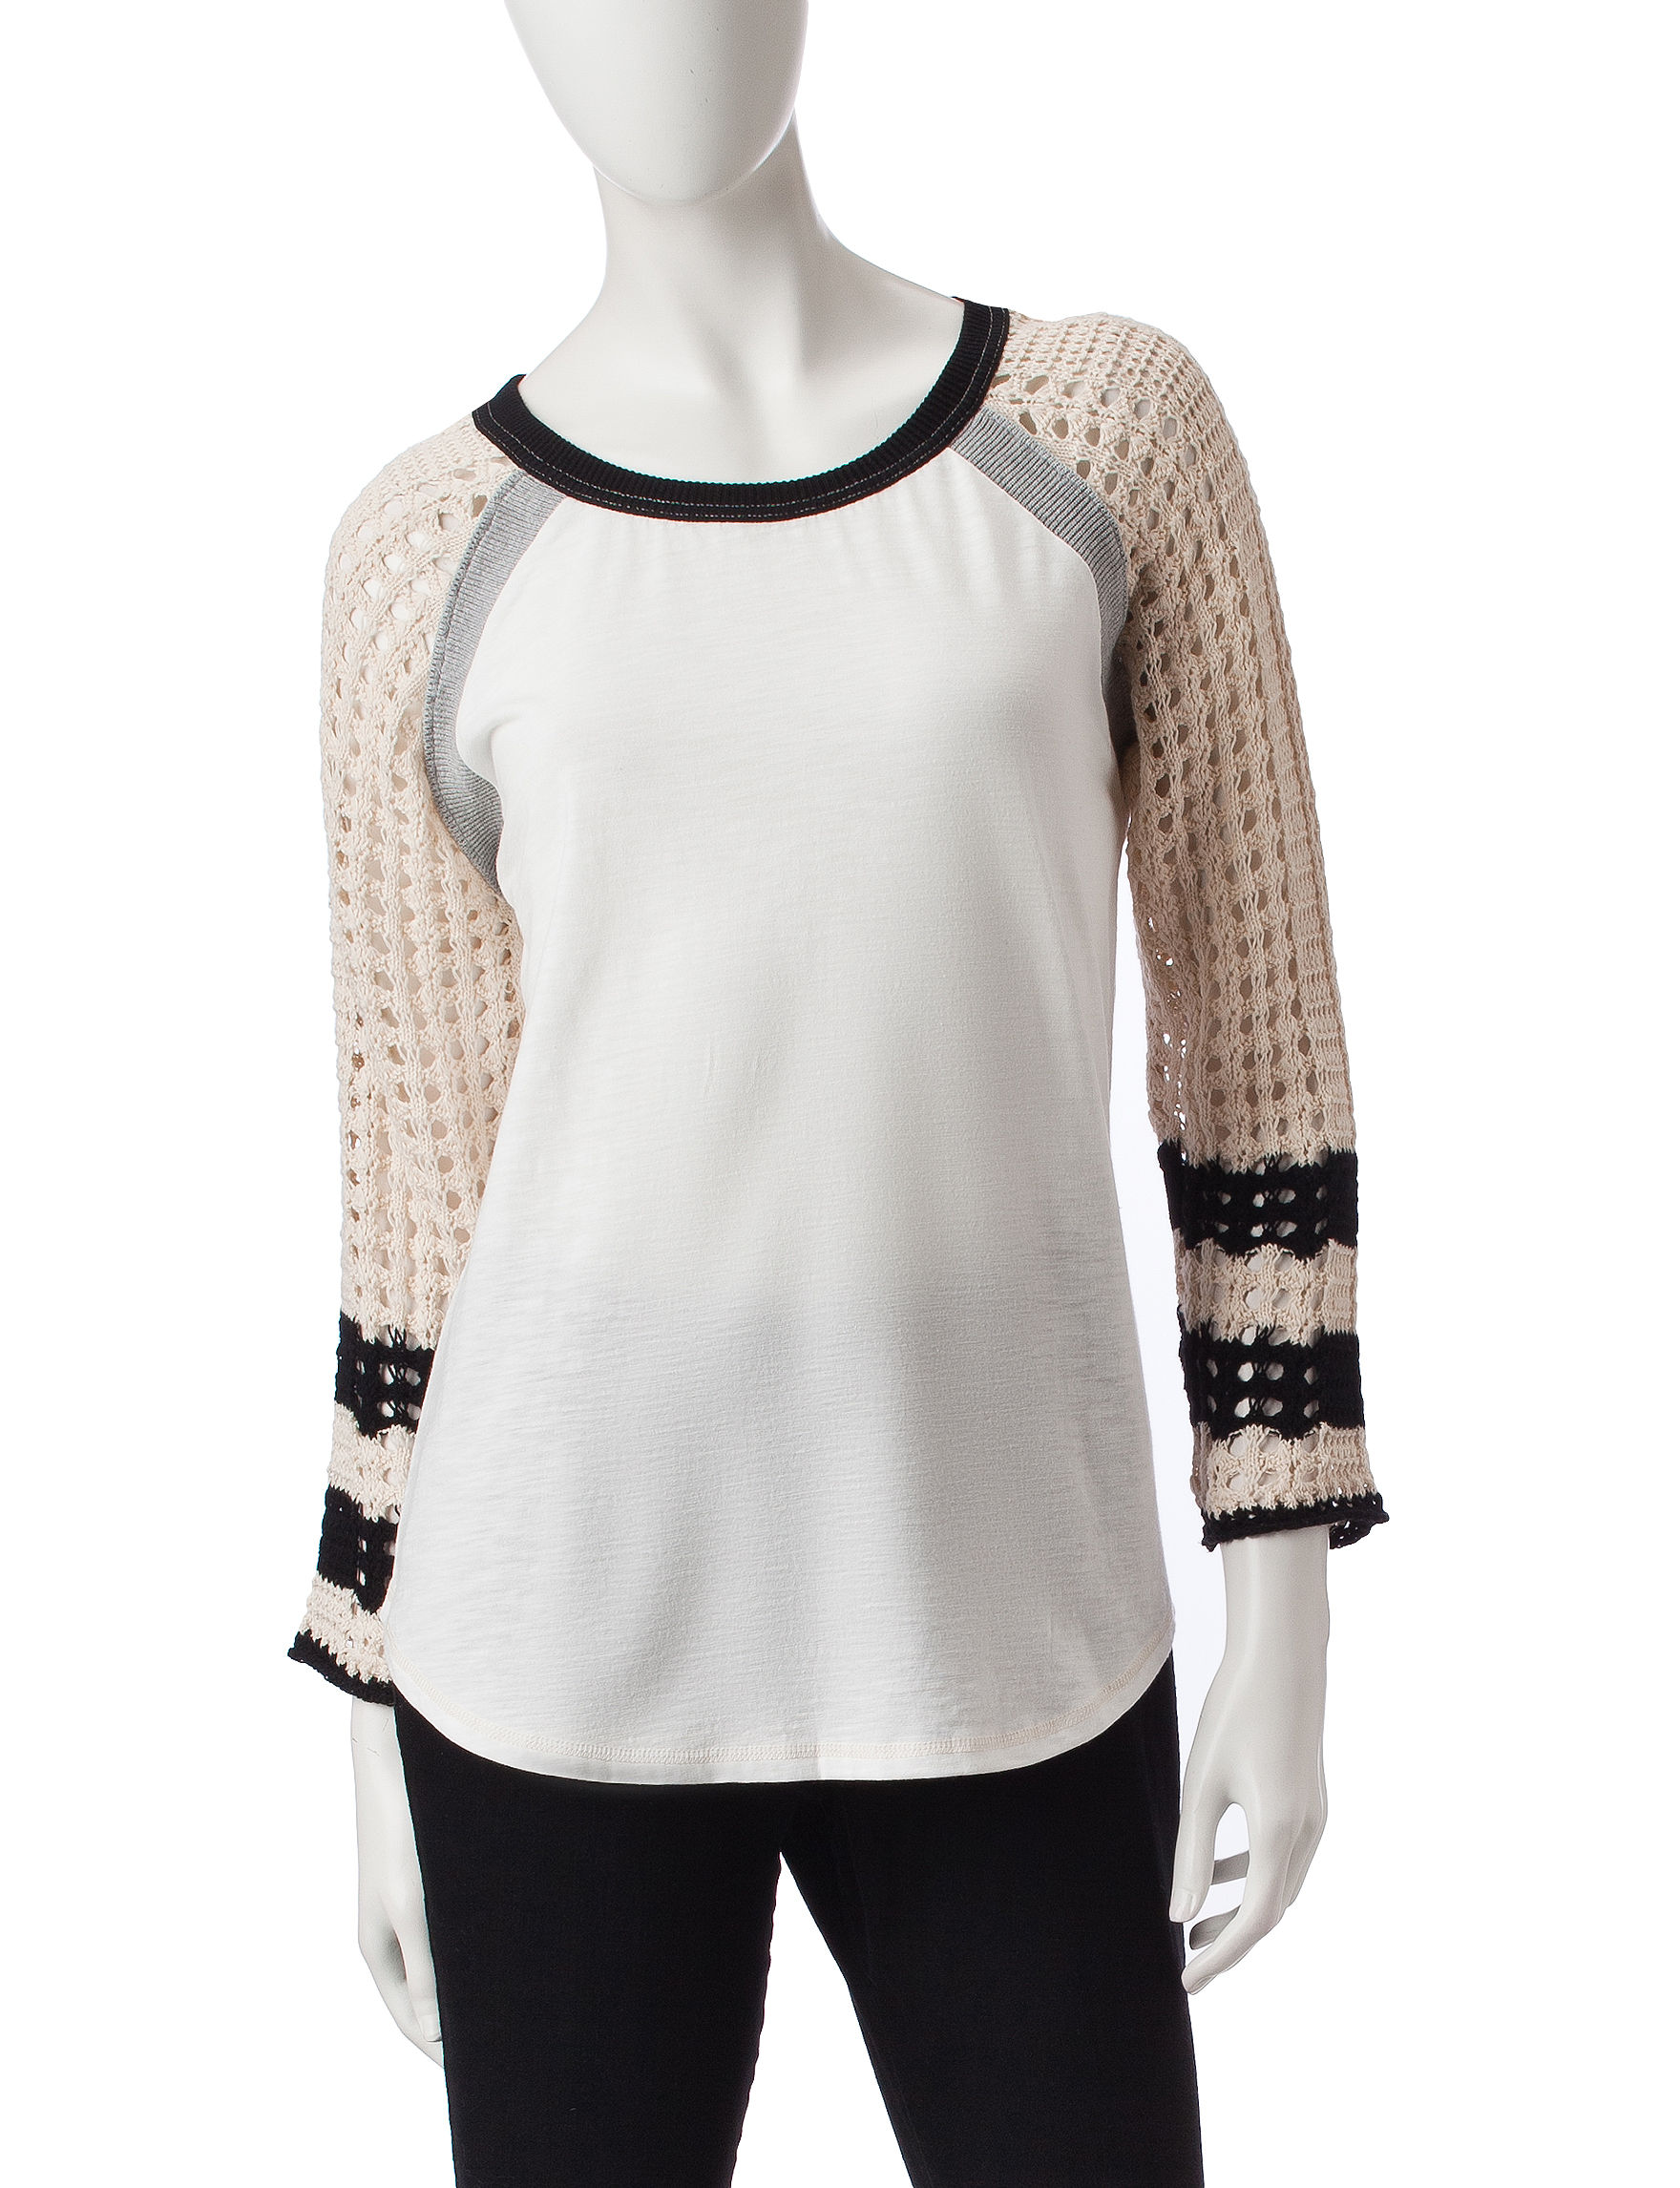 Hannah White Multi Shirts & Blouses Tees & Tanks